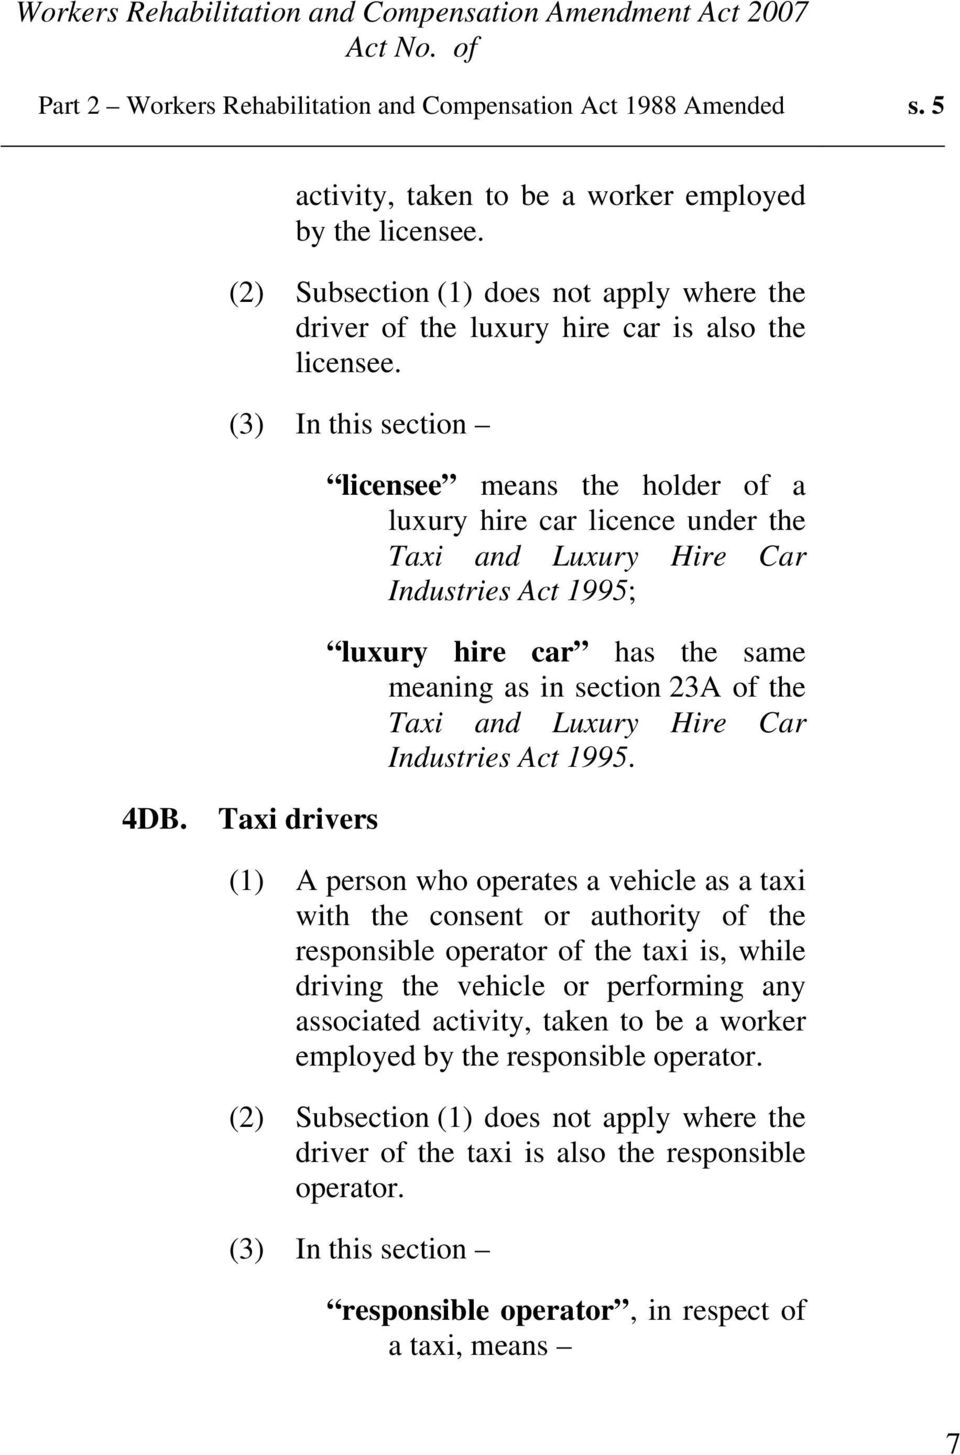 (3) In this section licensee means the holder of a luxury hire car licence under the Taxi and Luxury Hire Car Industries Act 1995; luxury hire car has the same meaning as in section 23A of the Taxi